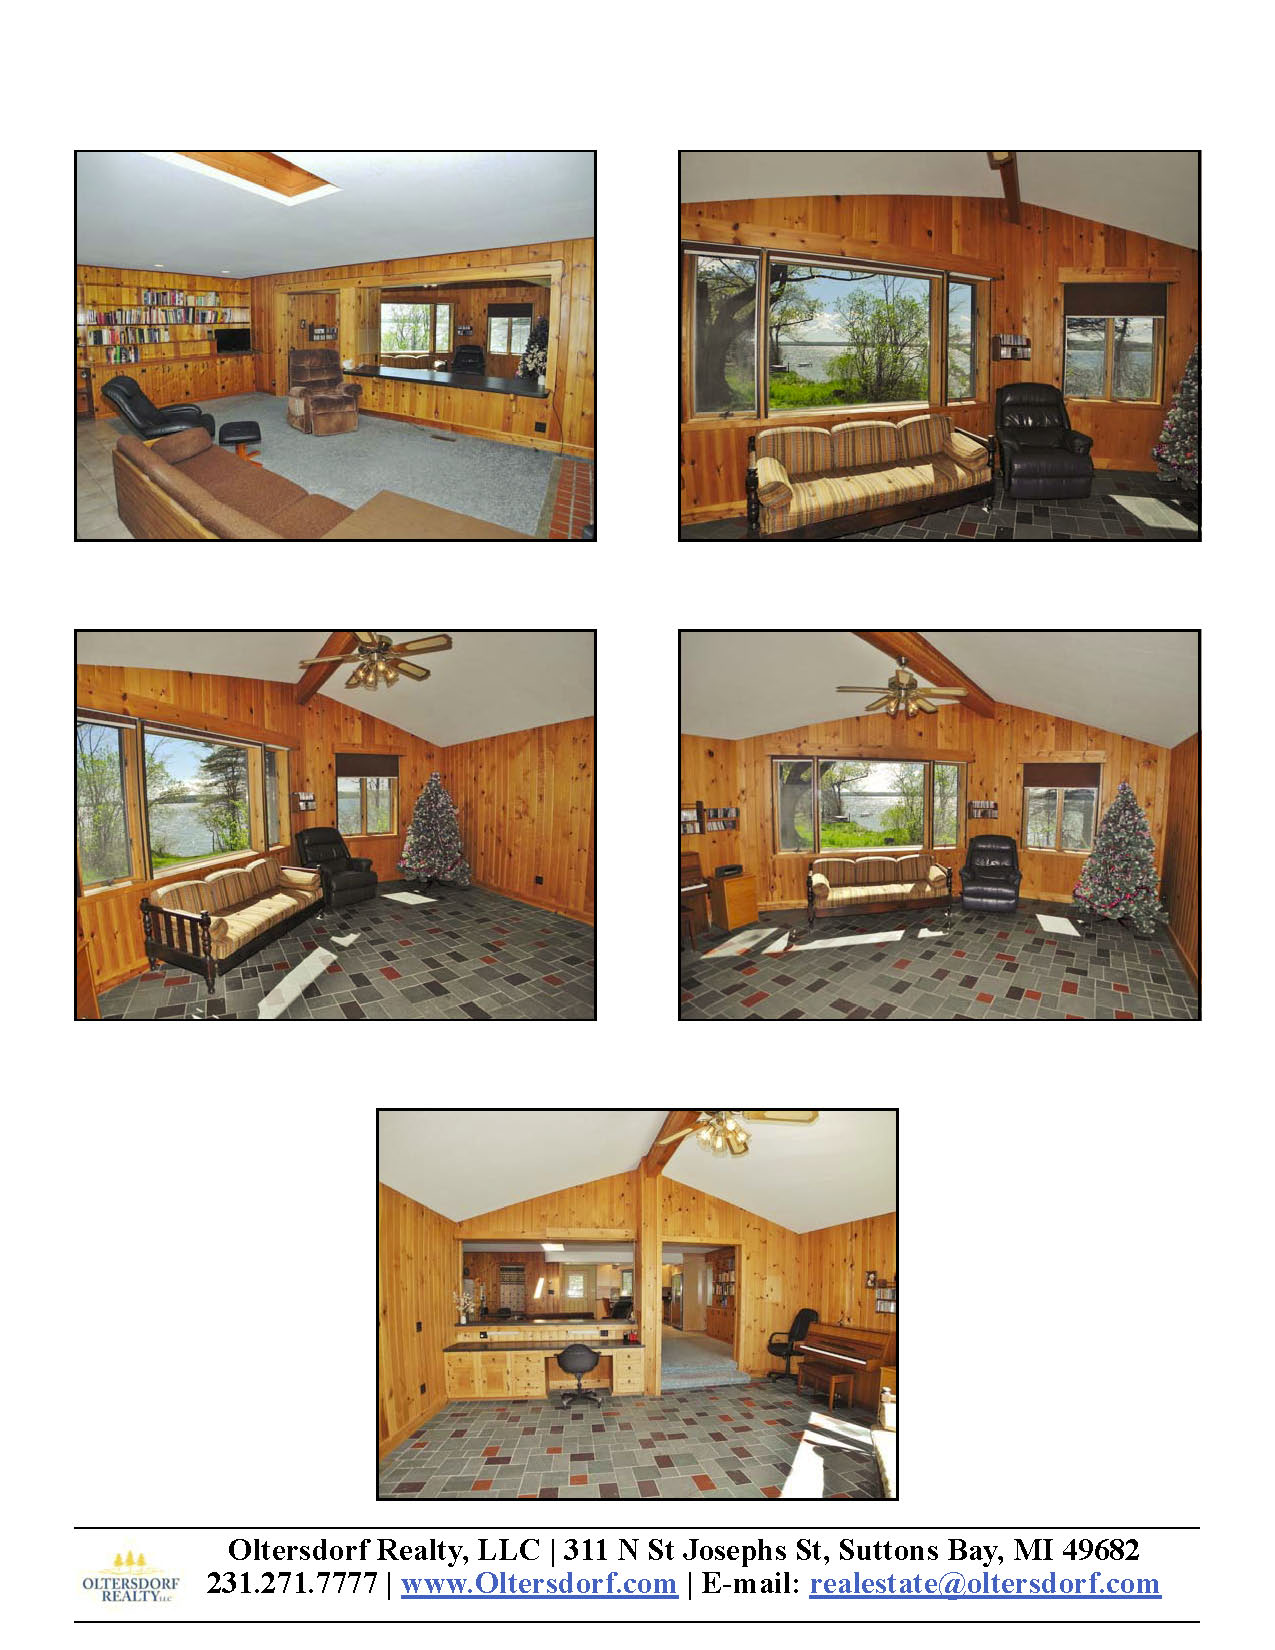 8164 S Lakeview Road, Traverse City, MI – Ranch Home & 100' on Lake Leelanau - For Sale by Oltersdorf Realty LLC - Marketing Packet (6).jpg